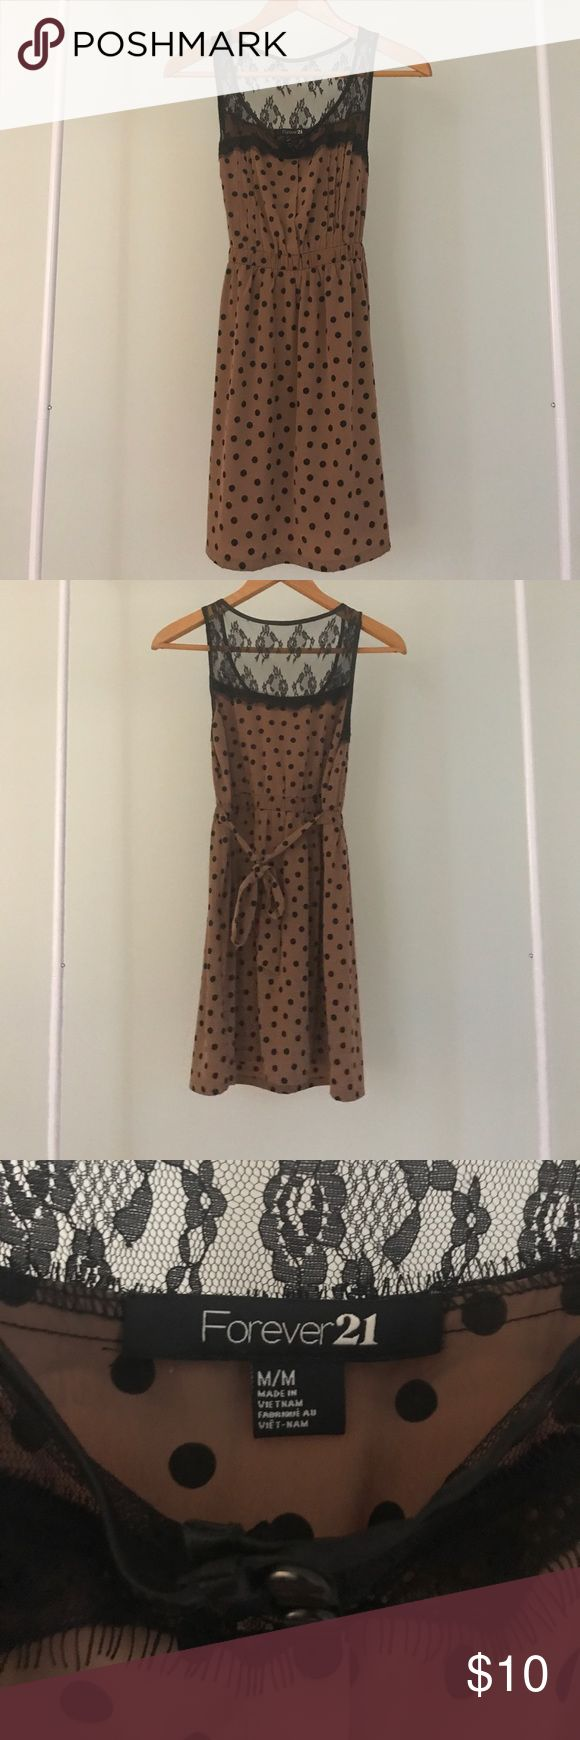 Women's fit and flare dress Women's Fit and Flare Dress. Size M. From Forever 21. Worn once. Tan with black polka dots and lace detail. Back of dress is tied for a more flattering fit. Forever 21 Dresses